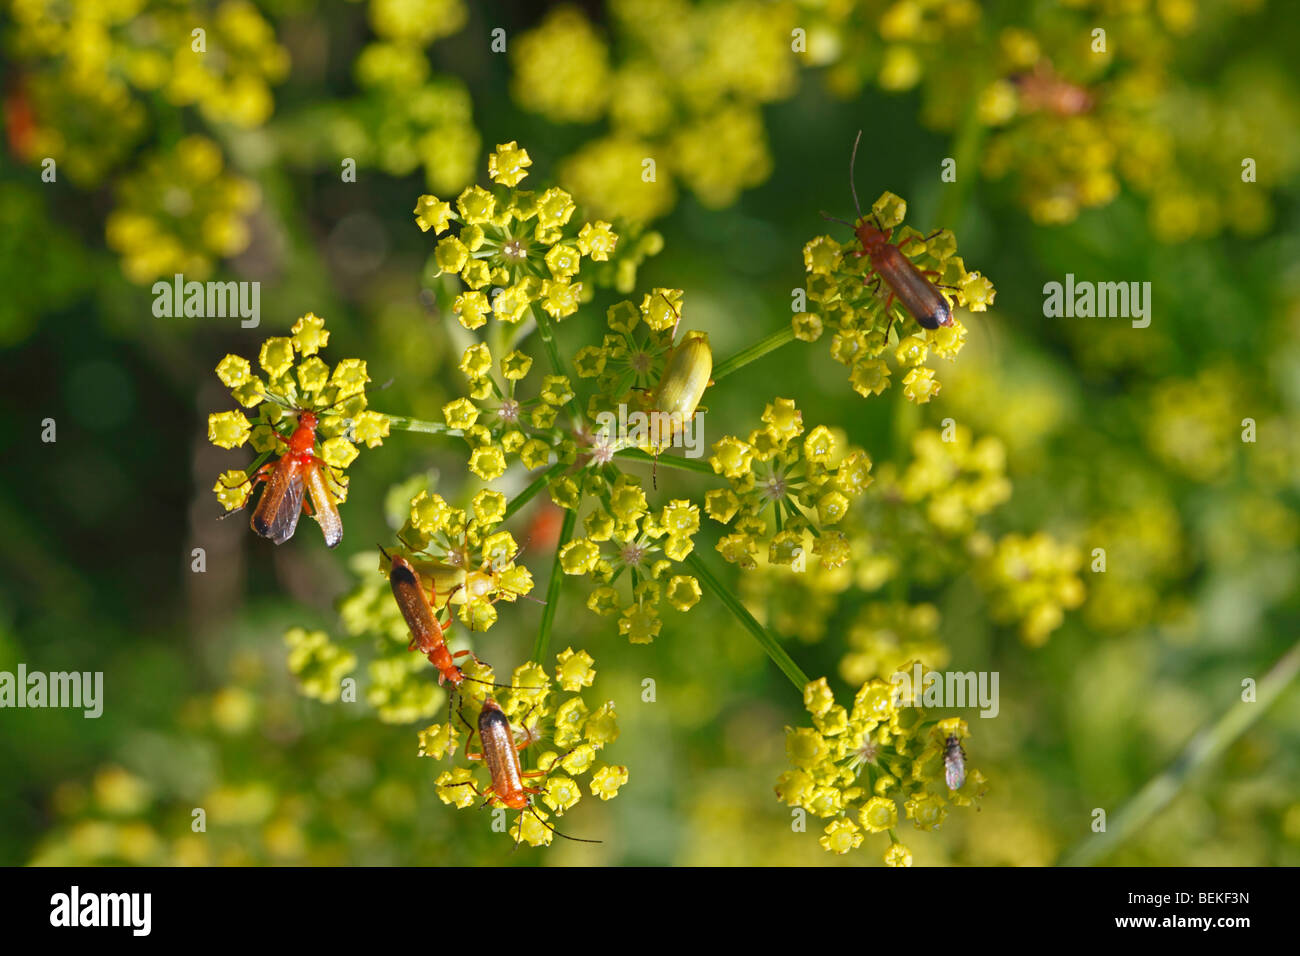 Soldier beetle and pollen beetle on wild parsnip flower - Stock Image